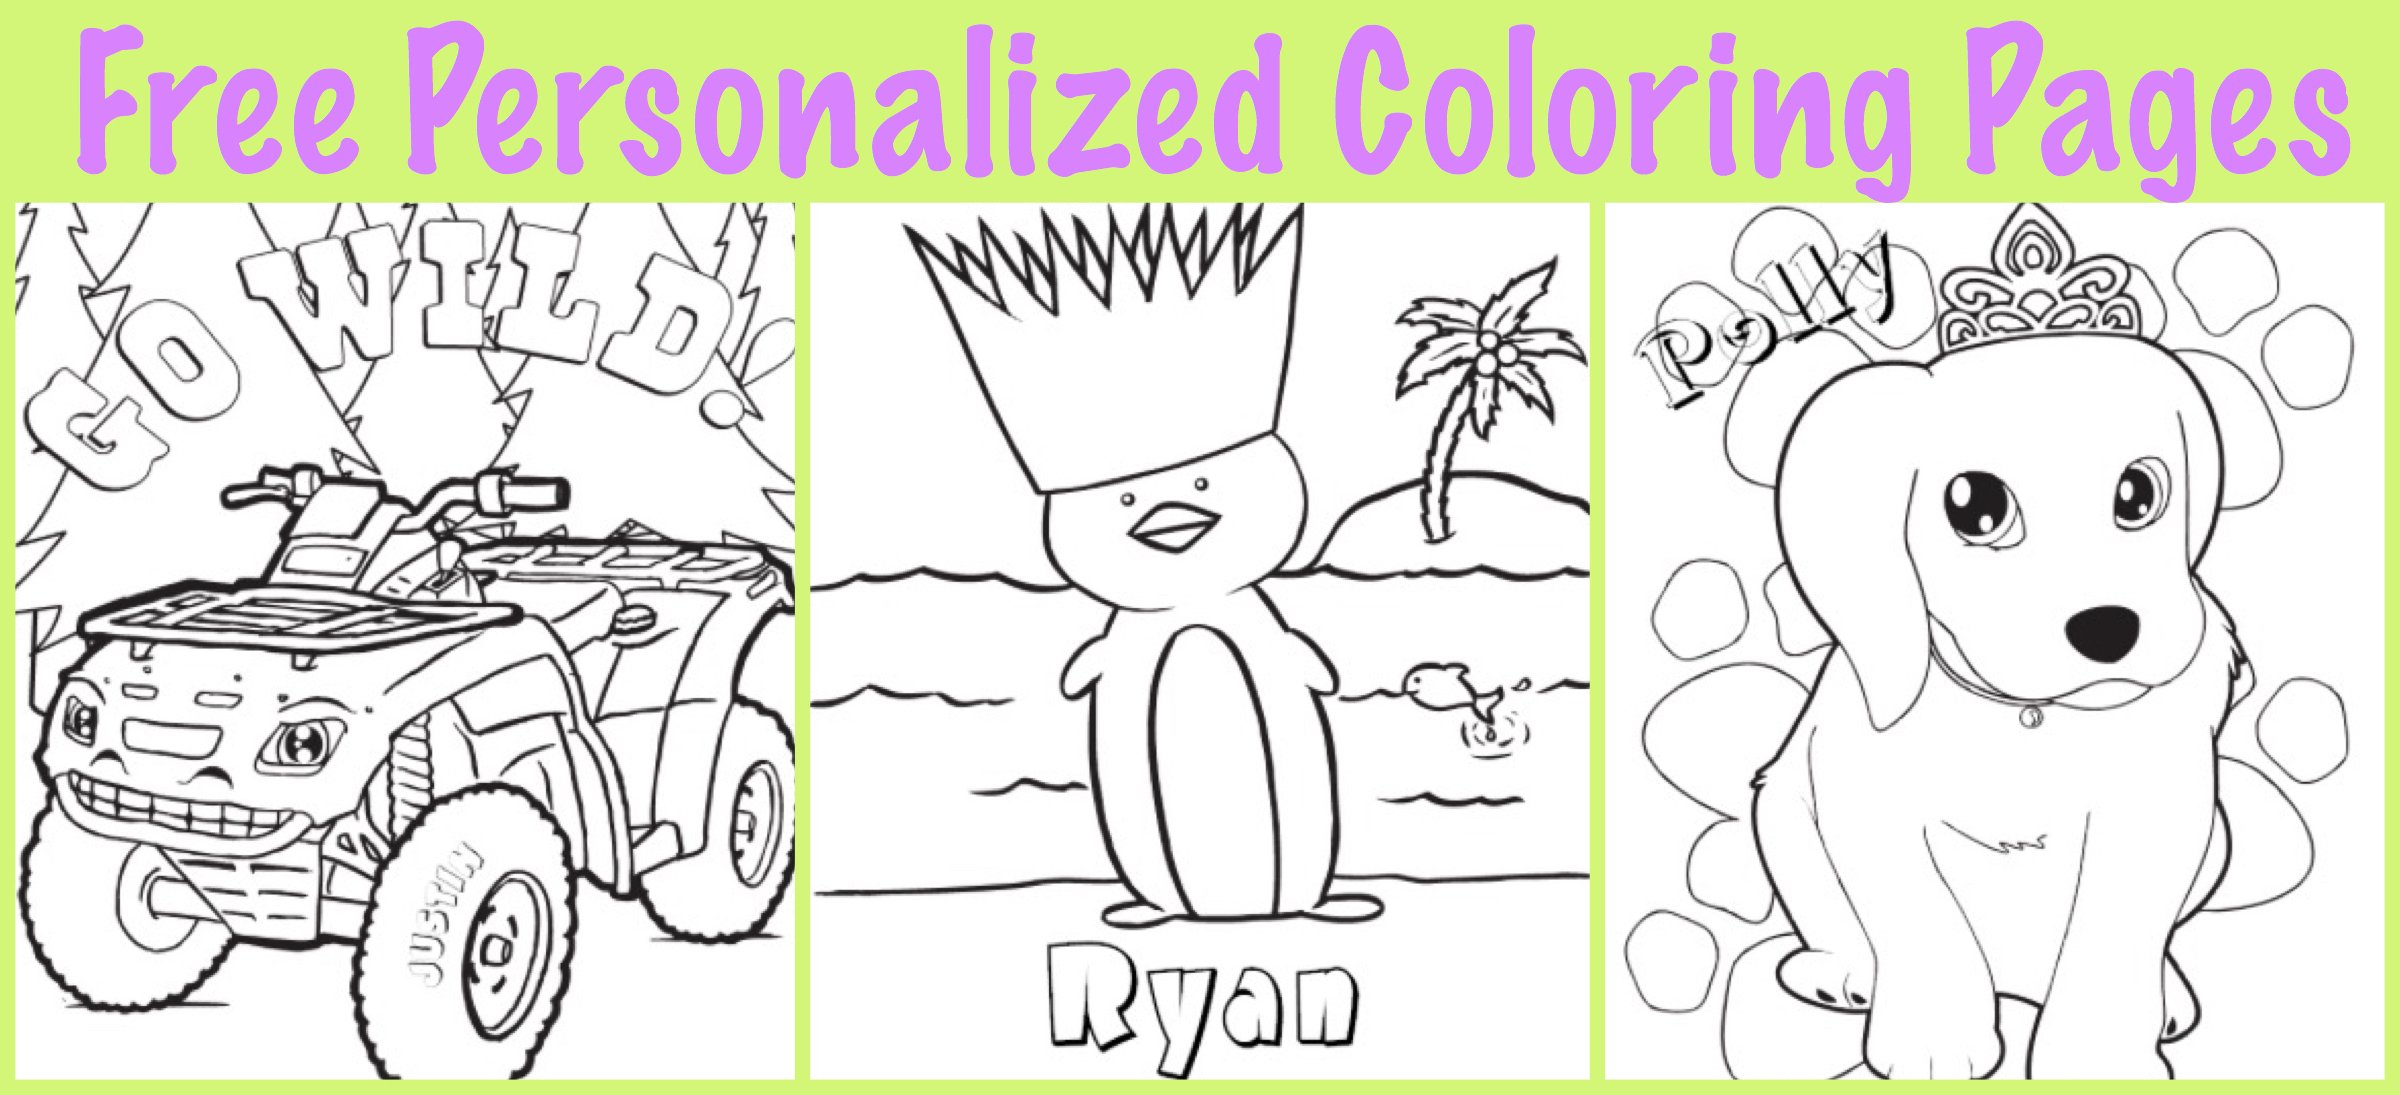 FREE Personalized Printable Coloring Pages for Kids | PartyIdeaPros.com